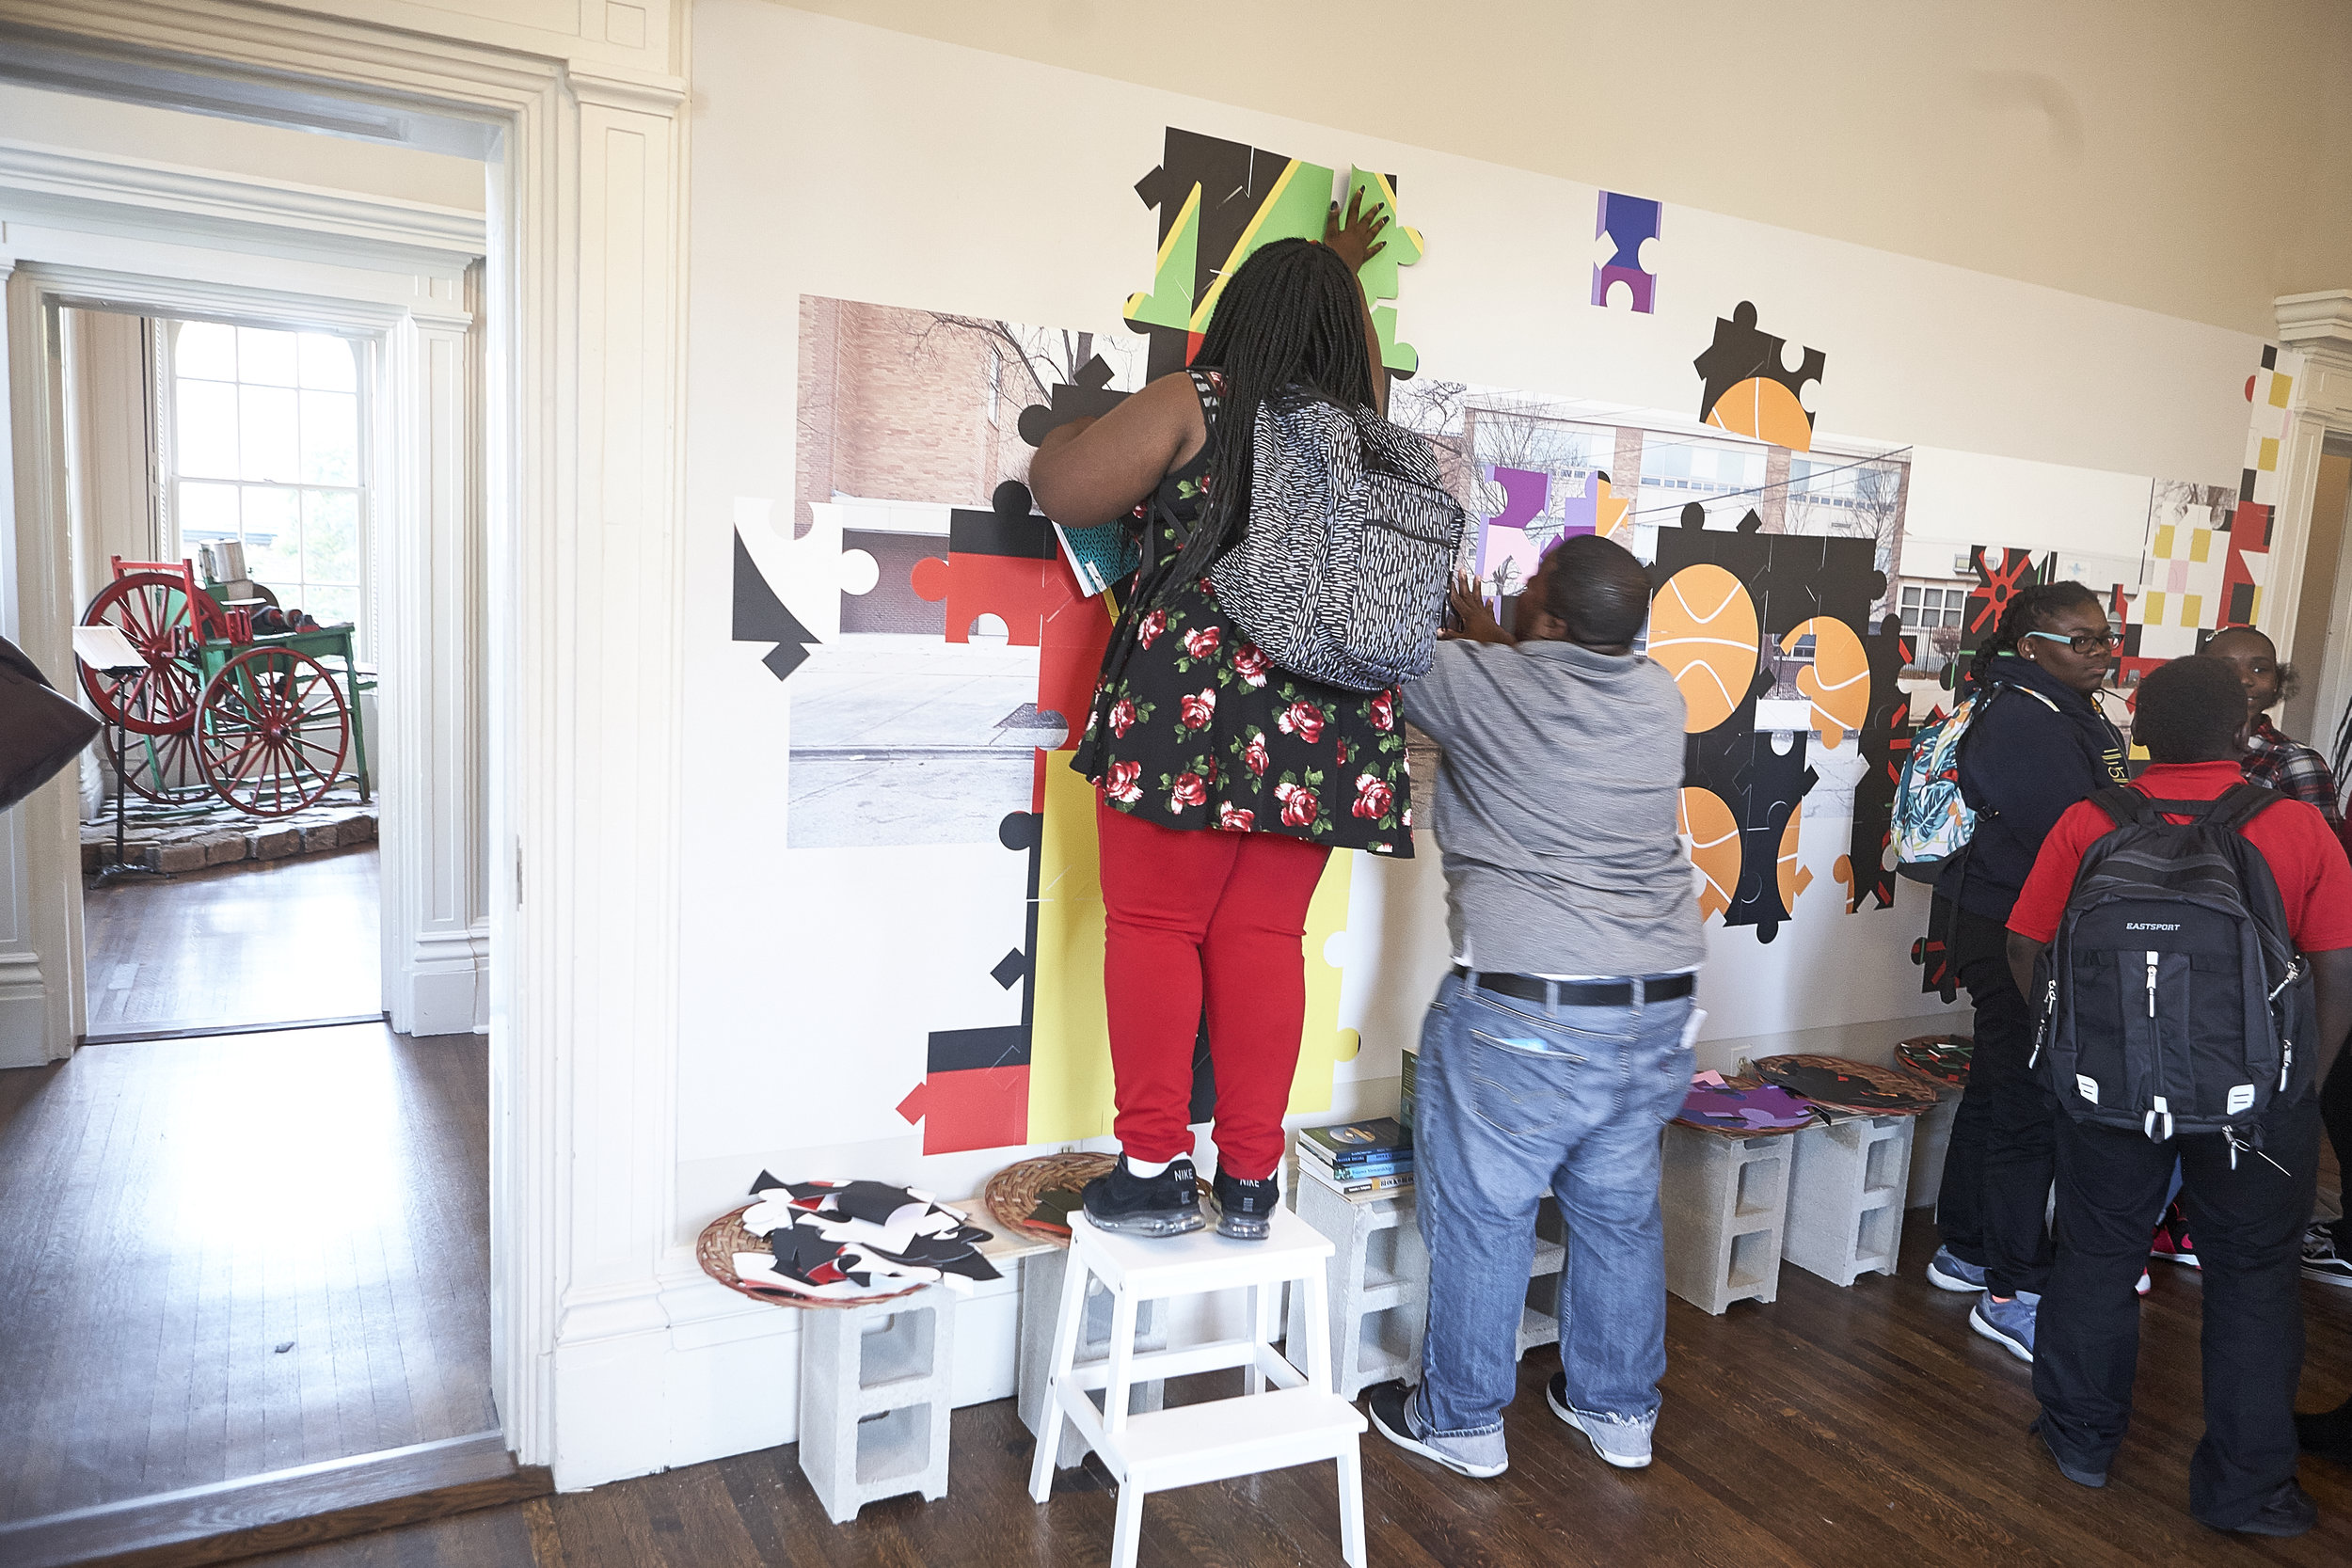 Current exhibition  Claiming Space: Creative Grounds and Freedom Summer School  on view through March 31, 2018. (Image: Brandon Fields/JAHHM)